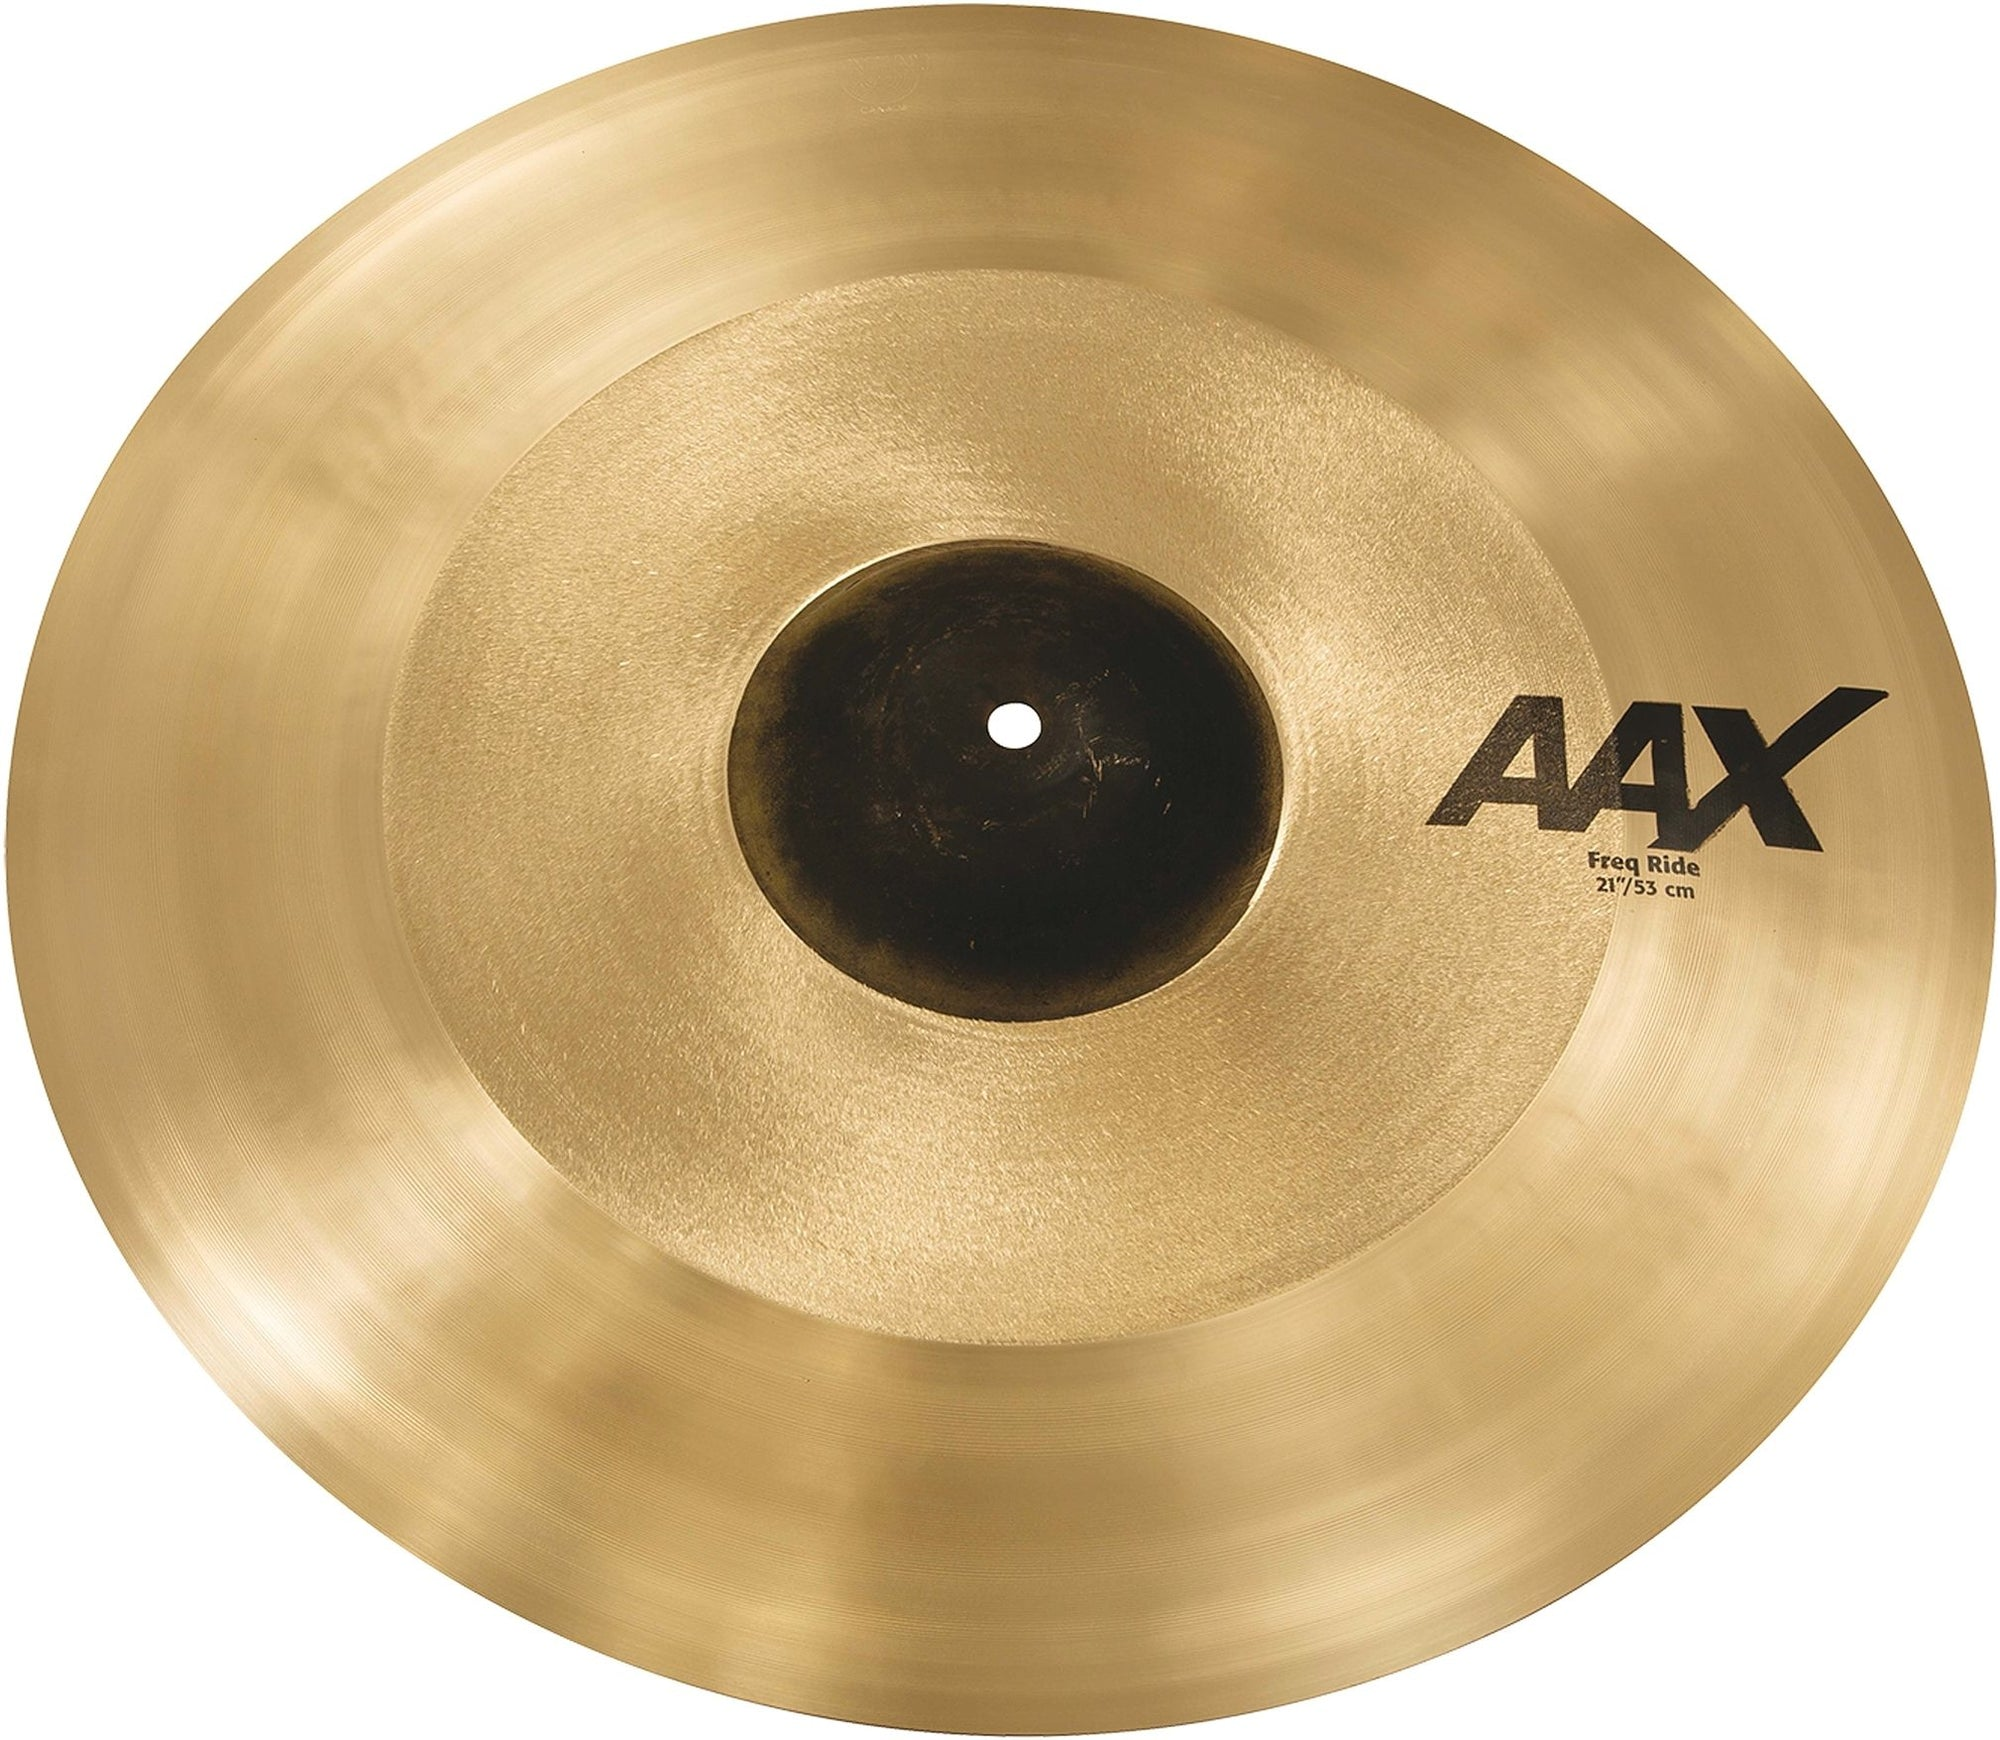 Sabian AAX Frequency Ride Cymbal, 21 Inch